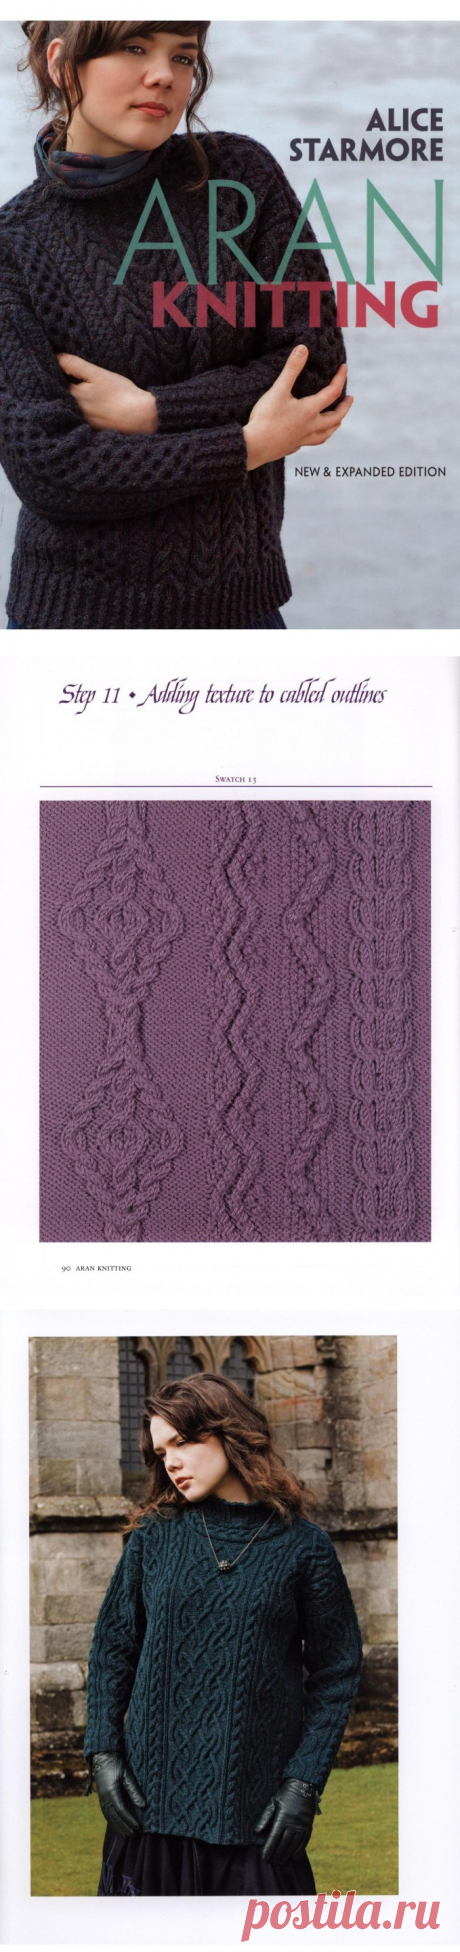 Alice Starmore - Aran Knitting - New & Expanded Edition 2010/ избранное